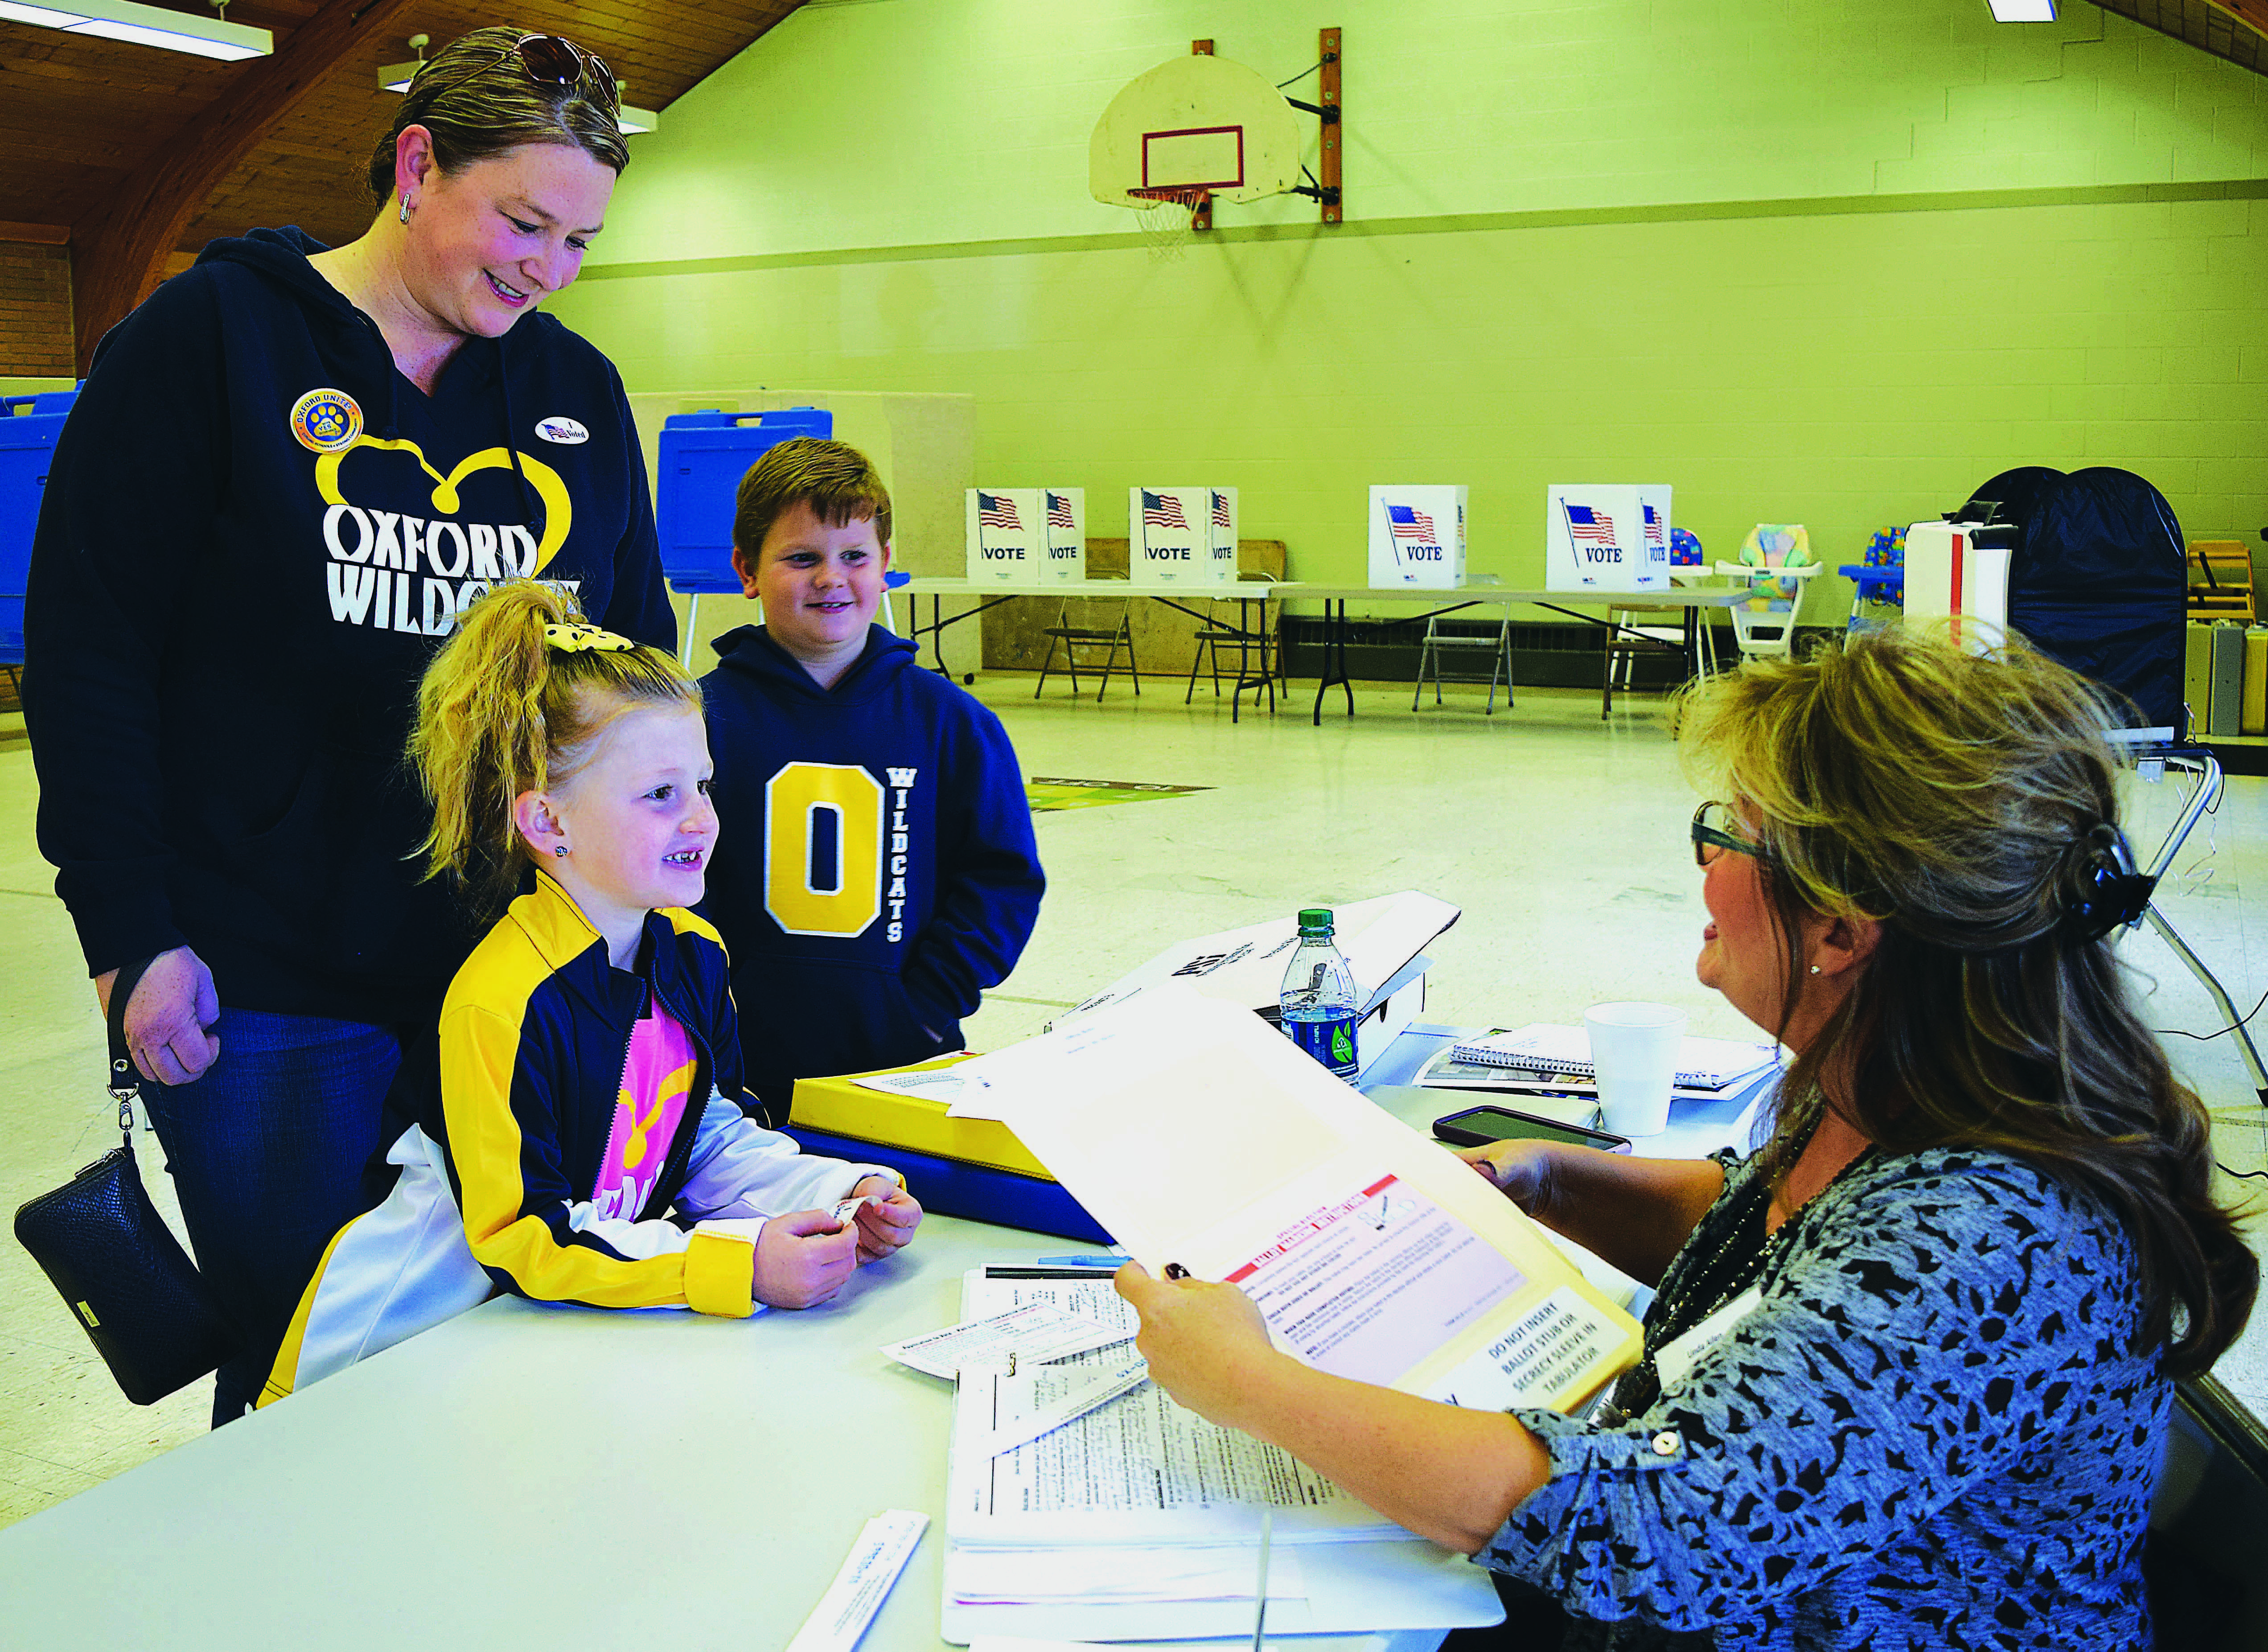 Voting as a family in Tuesday's school election are Oxford residents Danielle Wernis and her children, Chase, 7, and Gabrielle, 6. Assisting them at the Oxford Free Methodist Church is Precinct #3 Chairperson Linda Allen. Photo by C.J. Carnacchio.